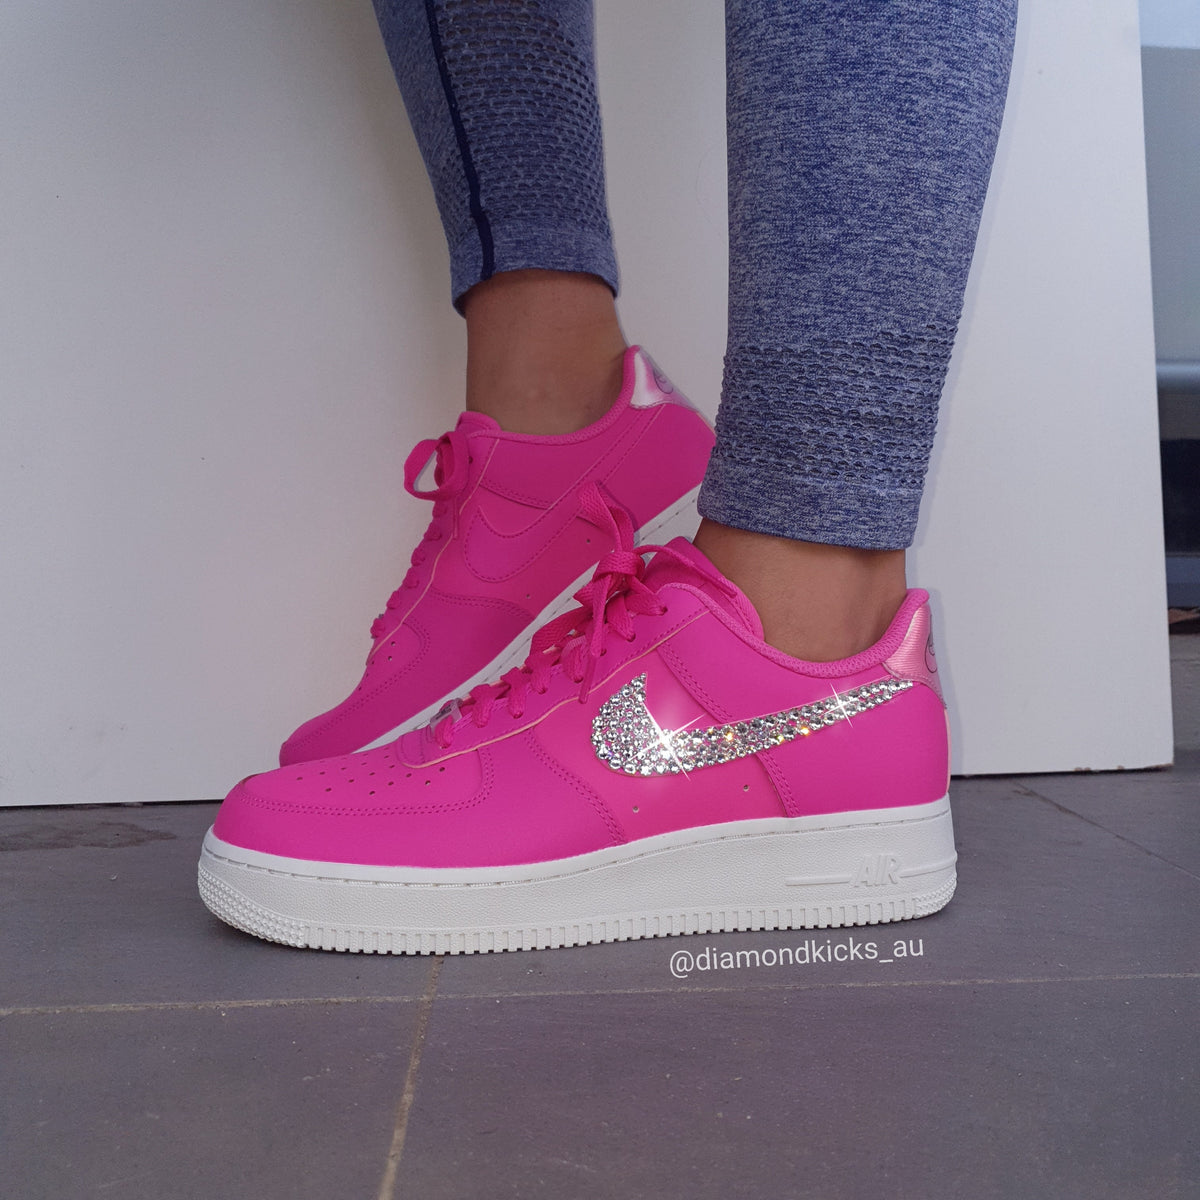 47c0948171f18 Swarovski Nike Custom Designed Diamond Shoes